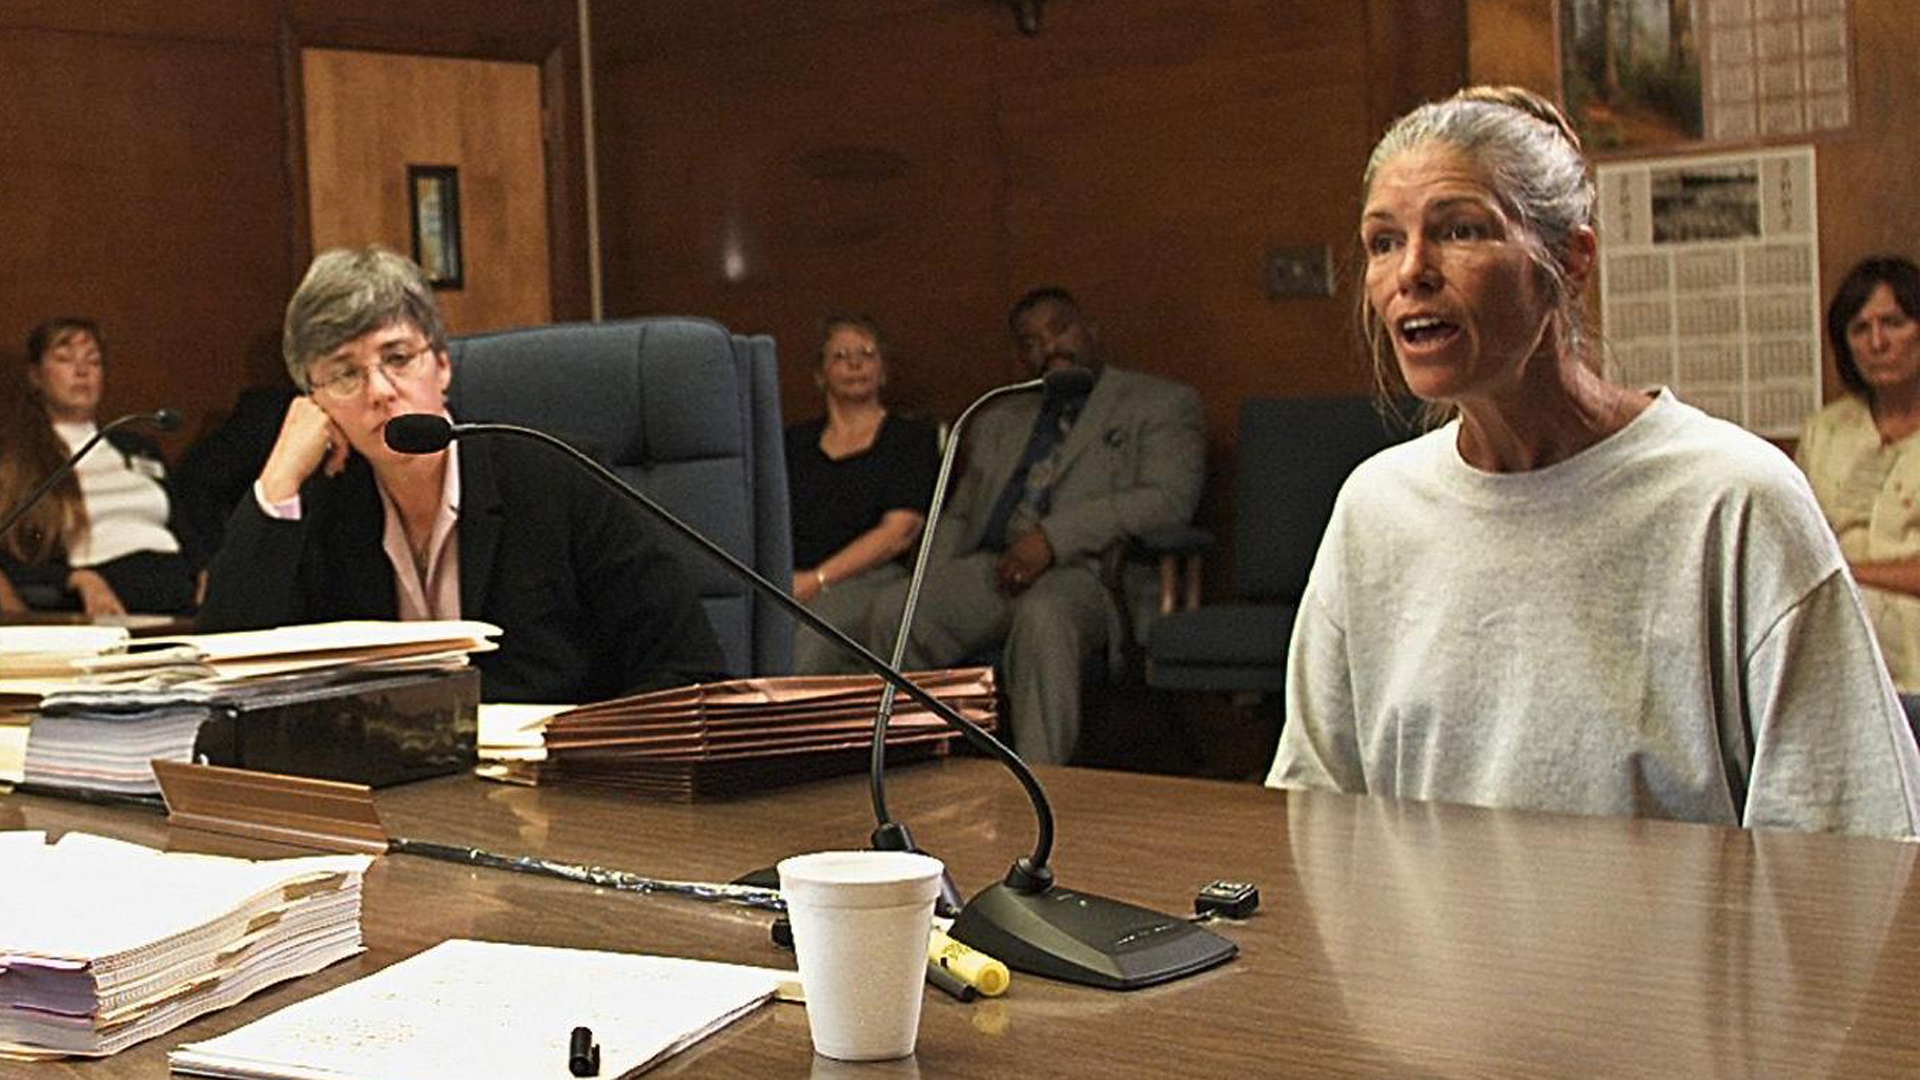 Leslie Van Houten speaks after her parole was denied June 28, 2002, at the California Institution for Women in Corona (Credit: DAMIAN DOVARGANES/AFP/Getty Images)